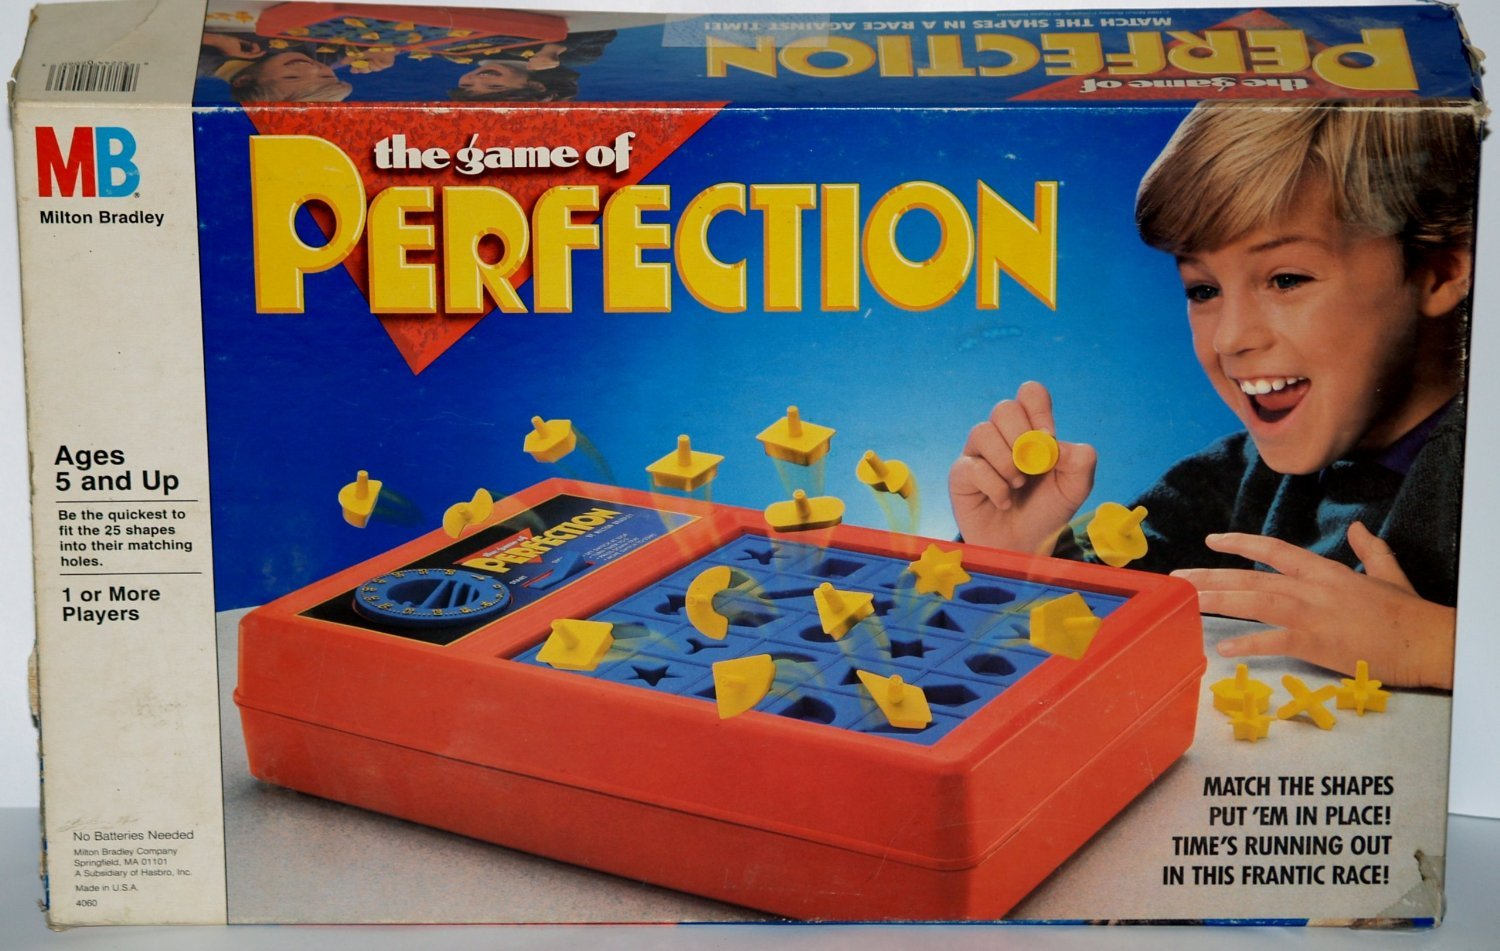 Toys And Games Com : Perfection board game fun for the whole family